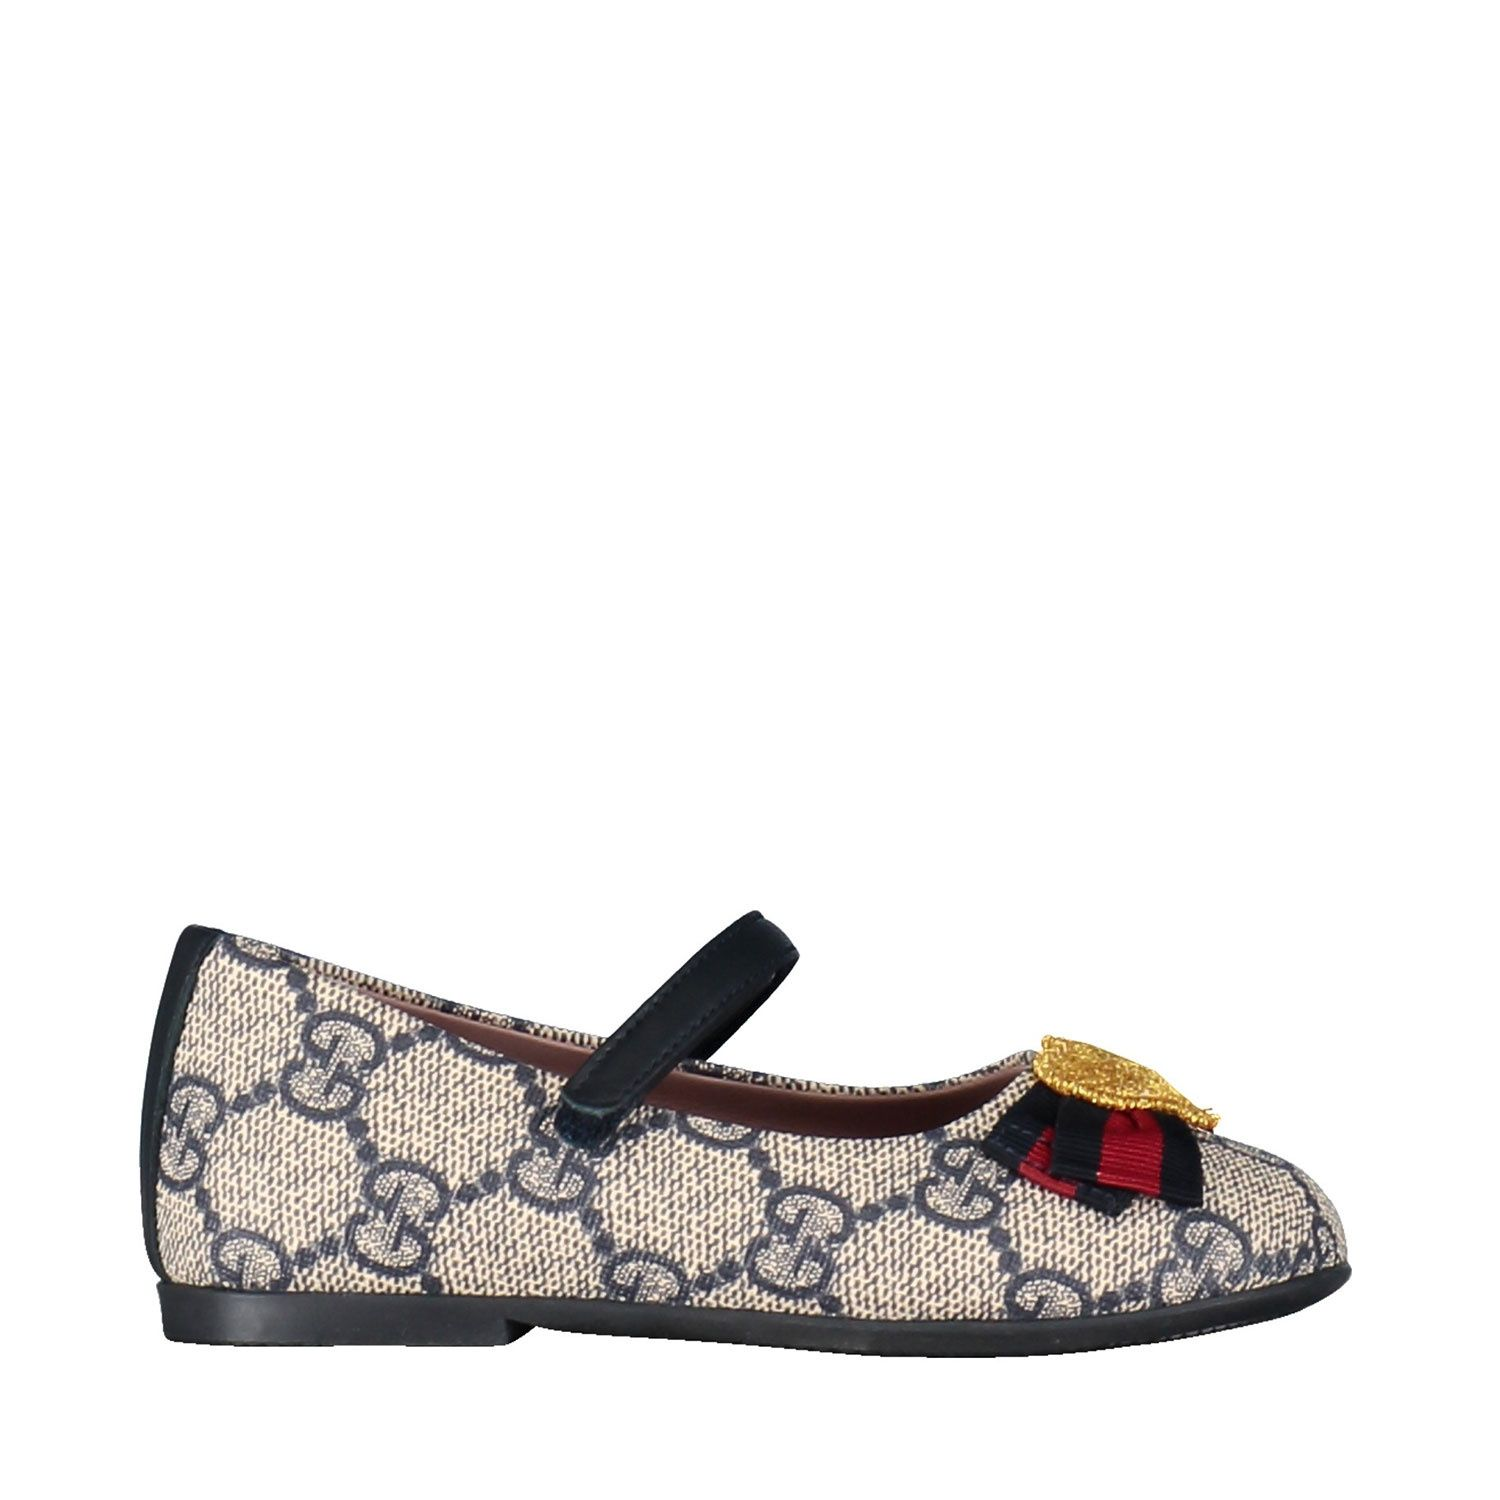 Picture of Gucci 418997 kids shoes navy